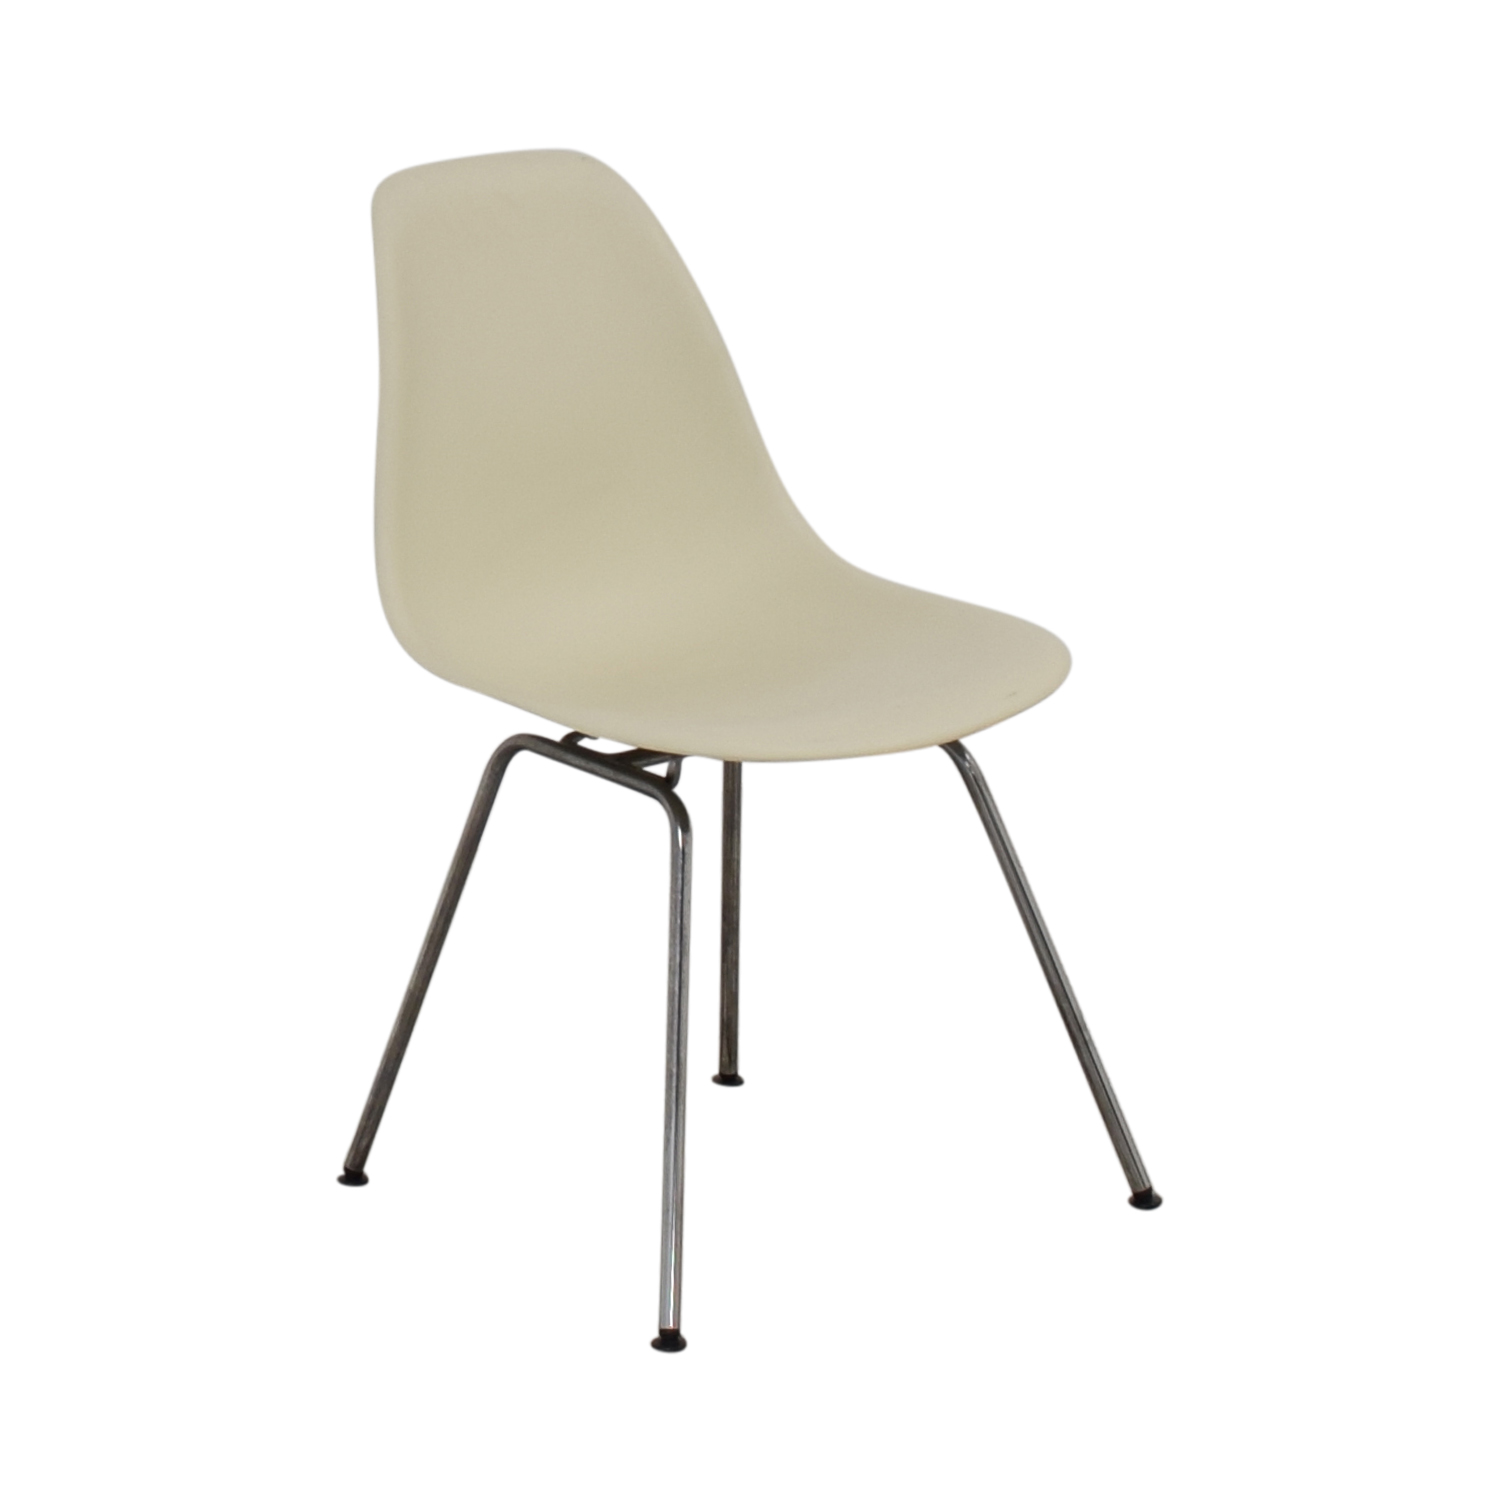 shop Design Within Reach Design Within Reach Eames Molded Plastic 4 Leg Side Chair online